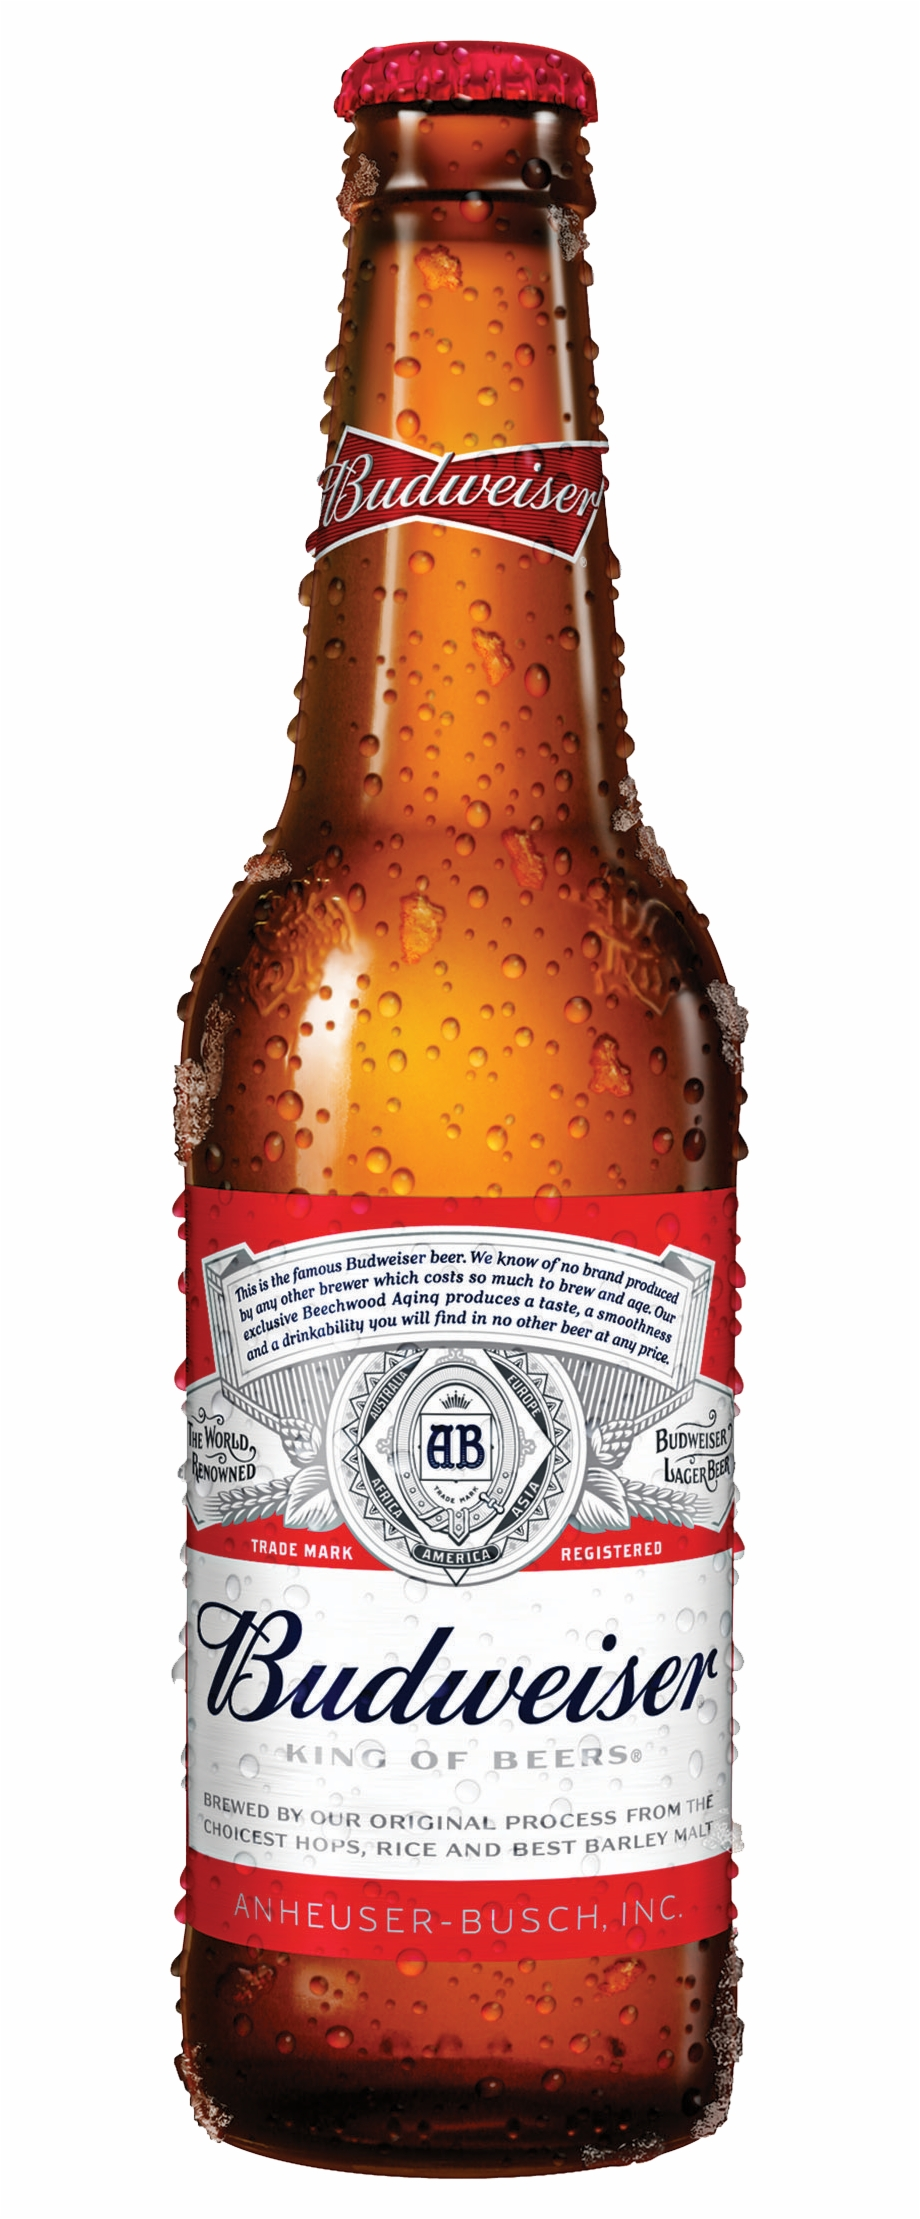 Clipart beer budweiser bottle, Clipart beer budweiser bottle.